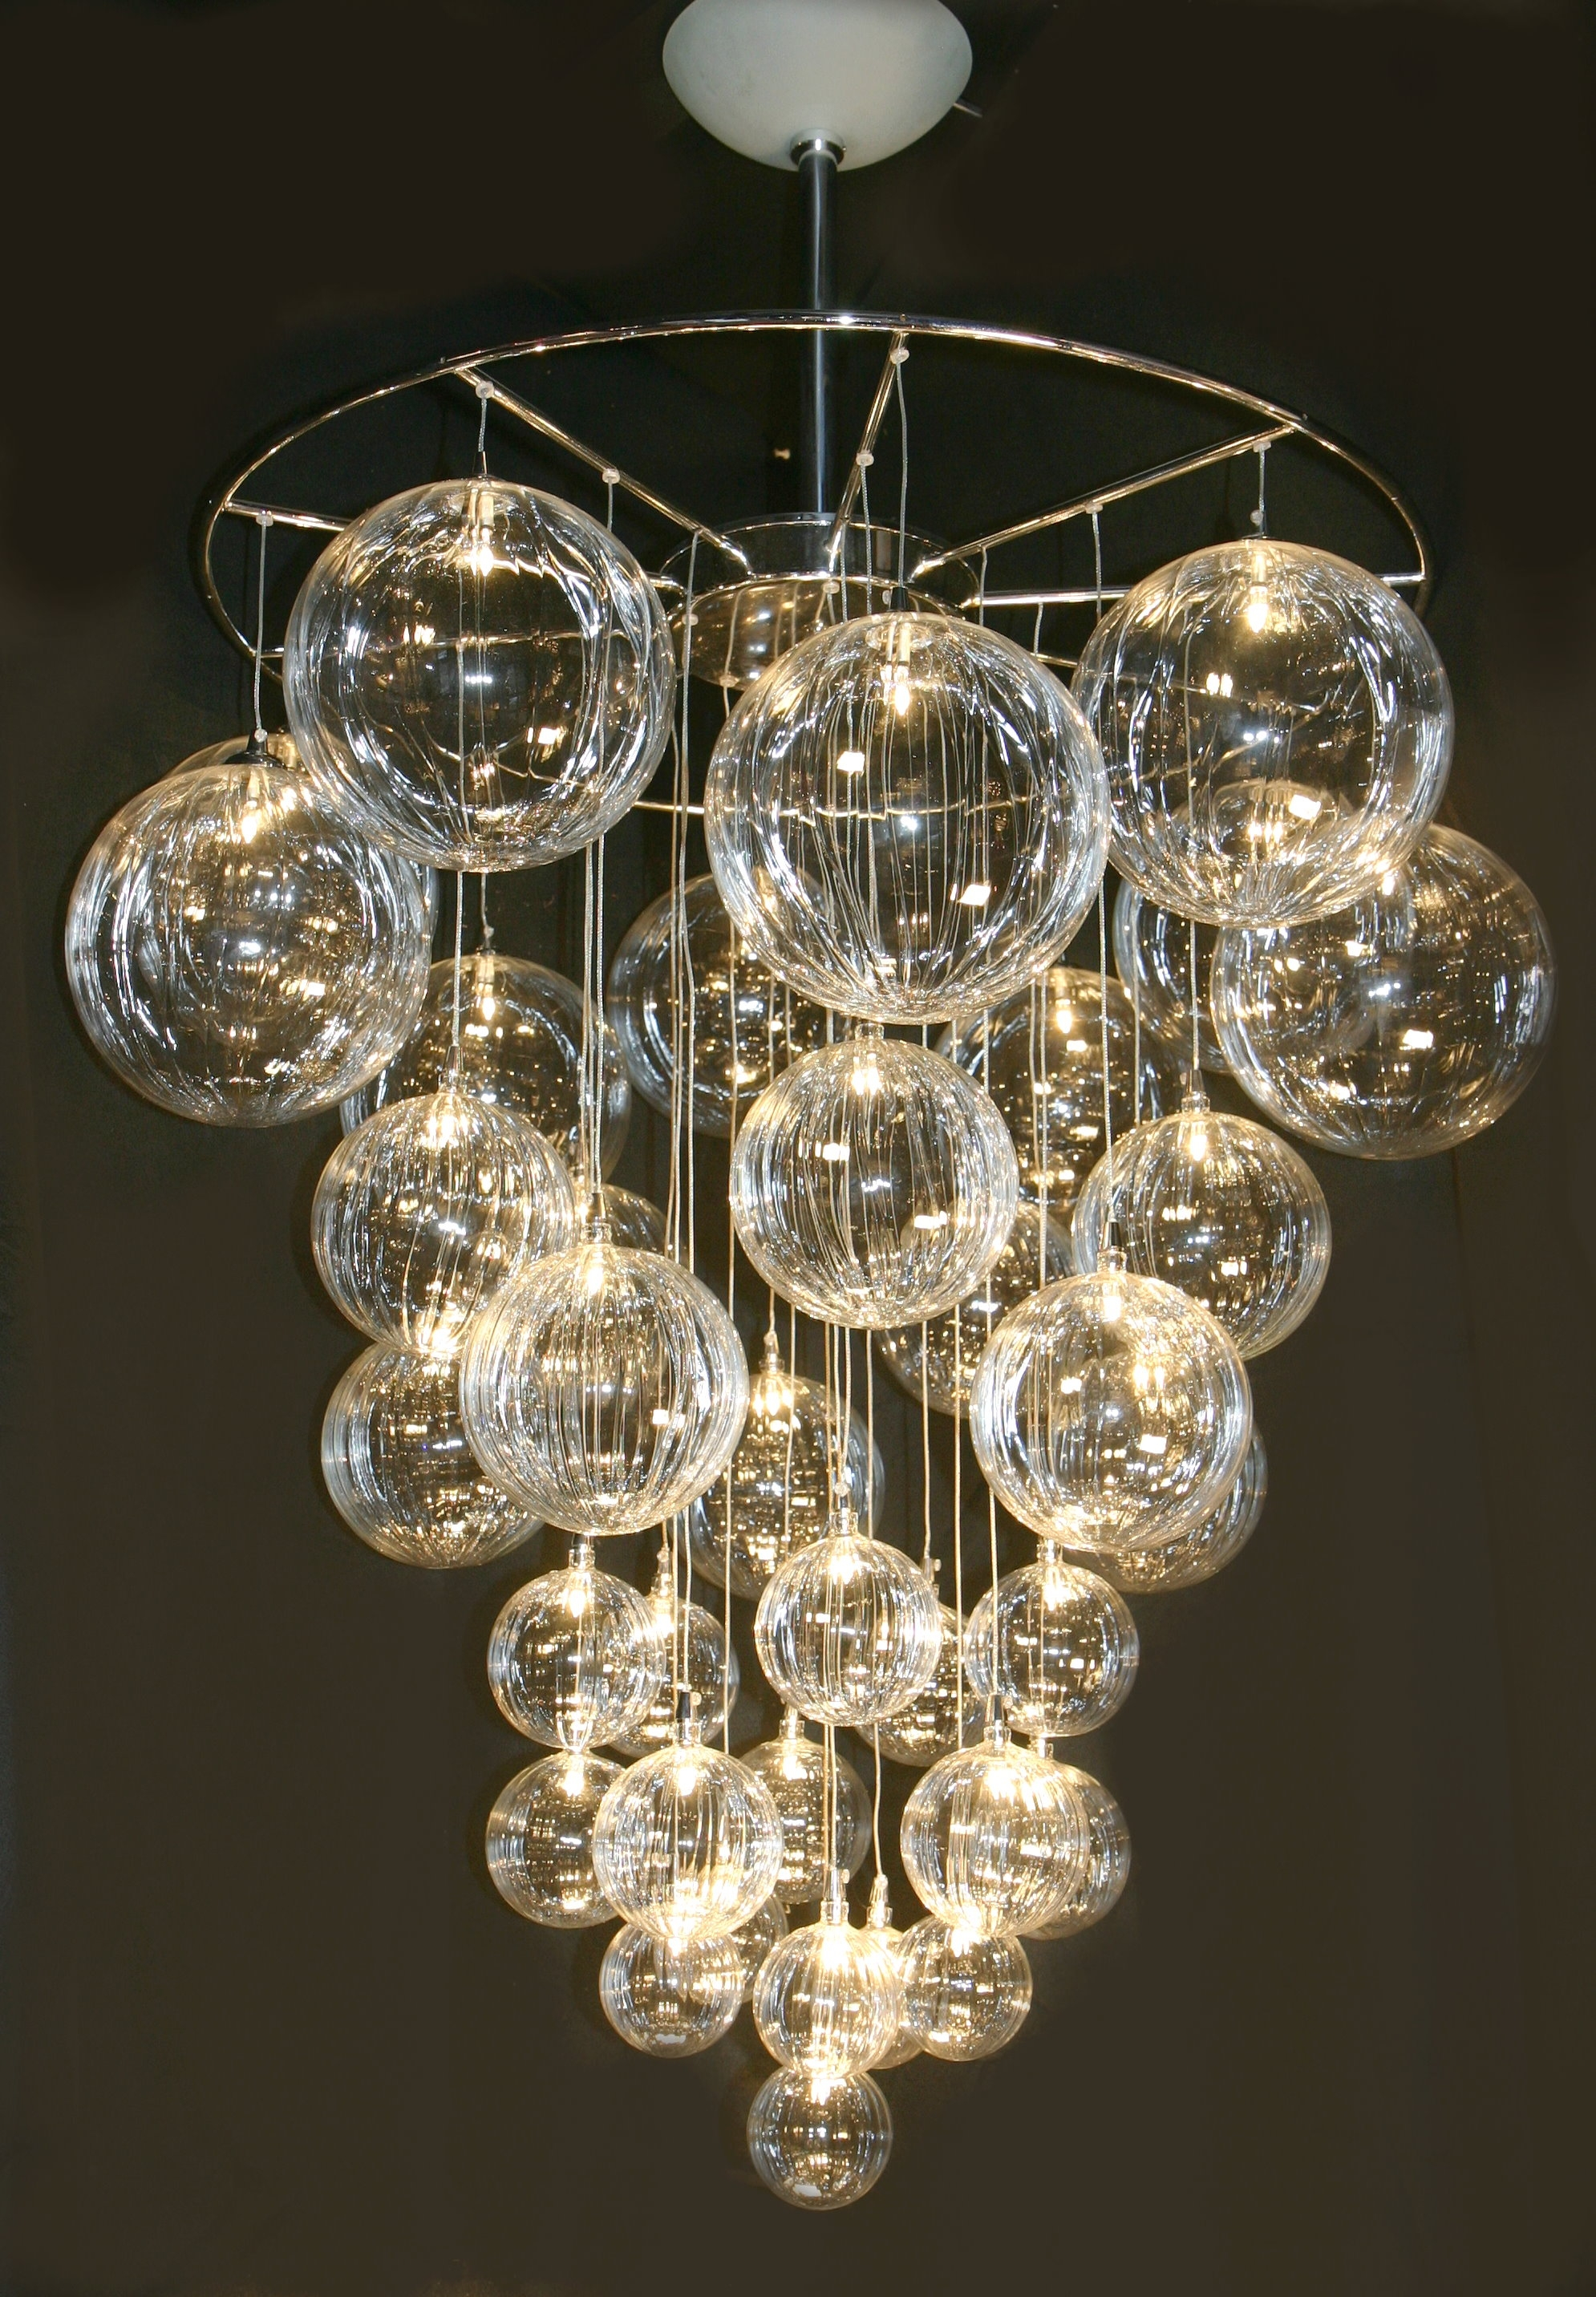 Chandeliers Hand Blown Glass Lighting Modern Contemporary Pertaining To Glass Chandeliers (Image 5 of 15)